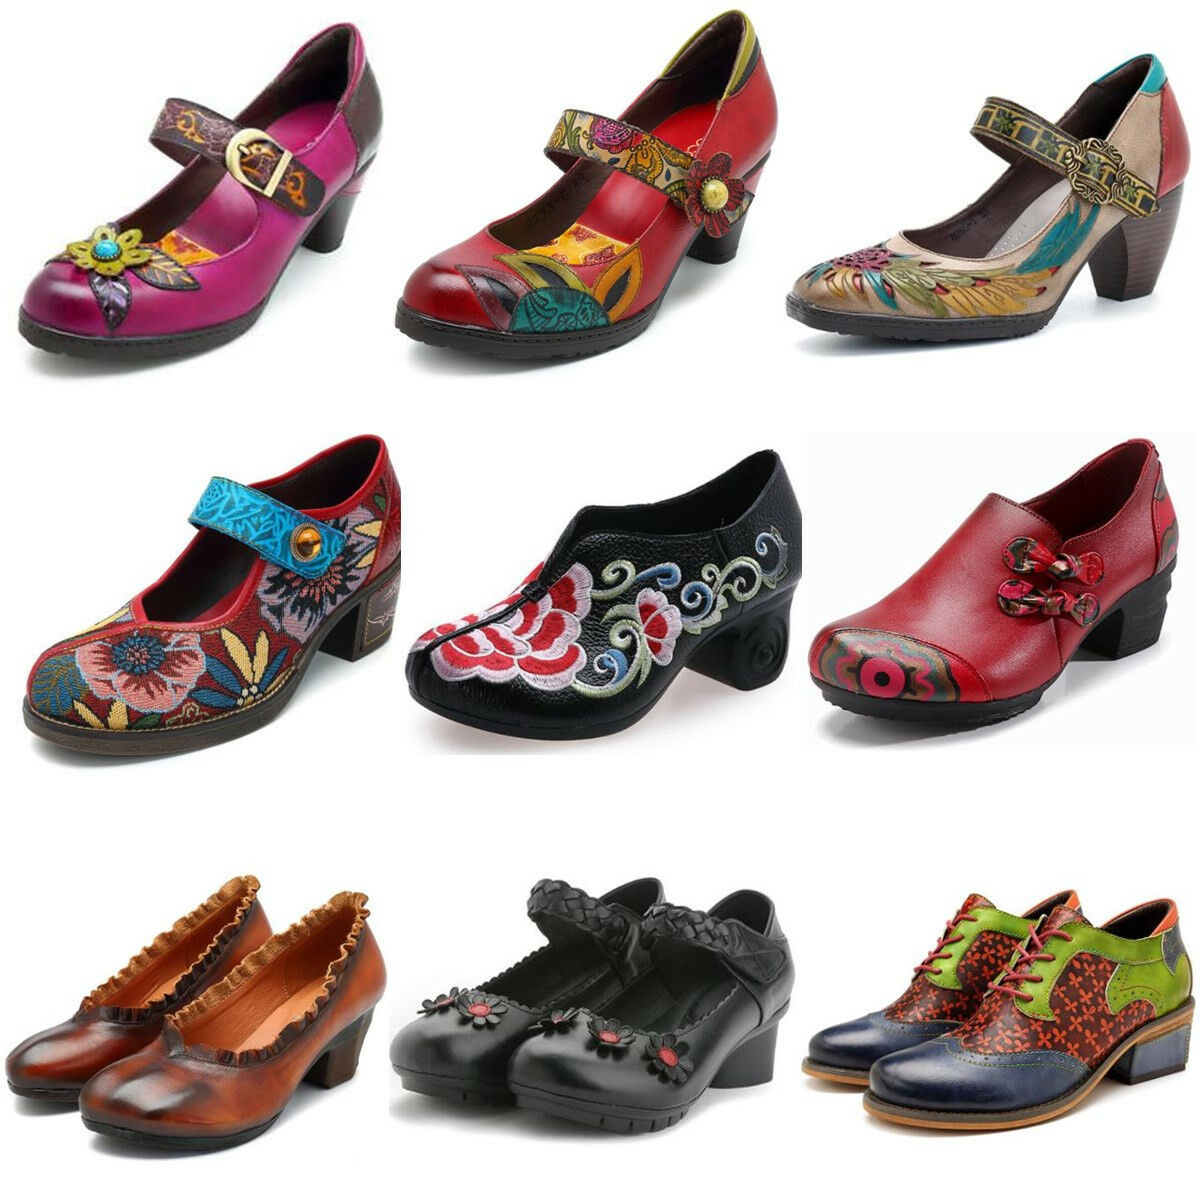 SOCOFY Retro Women Jacquard Splicing Leather Pumps shoes Bohemia Block Mary Janes